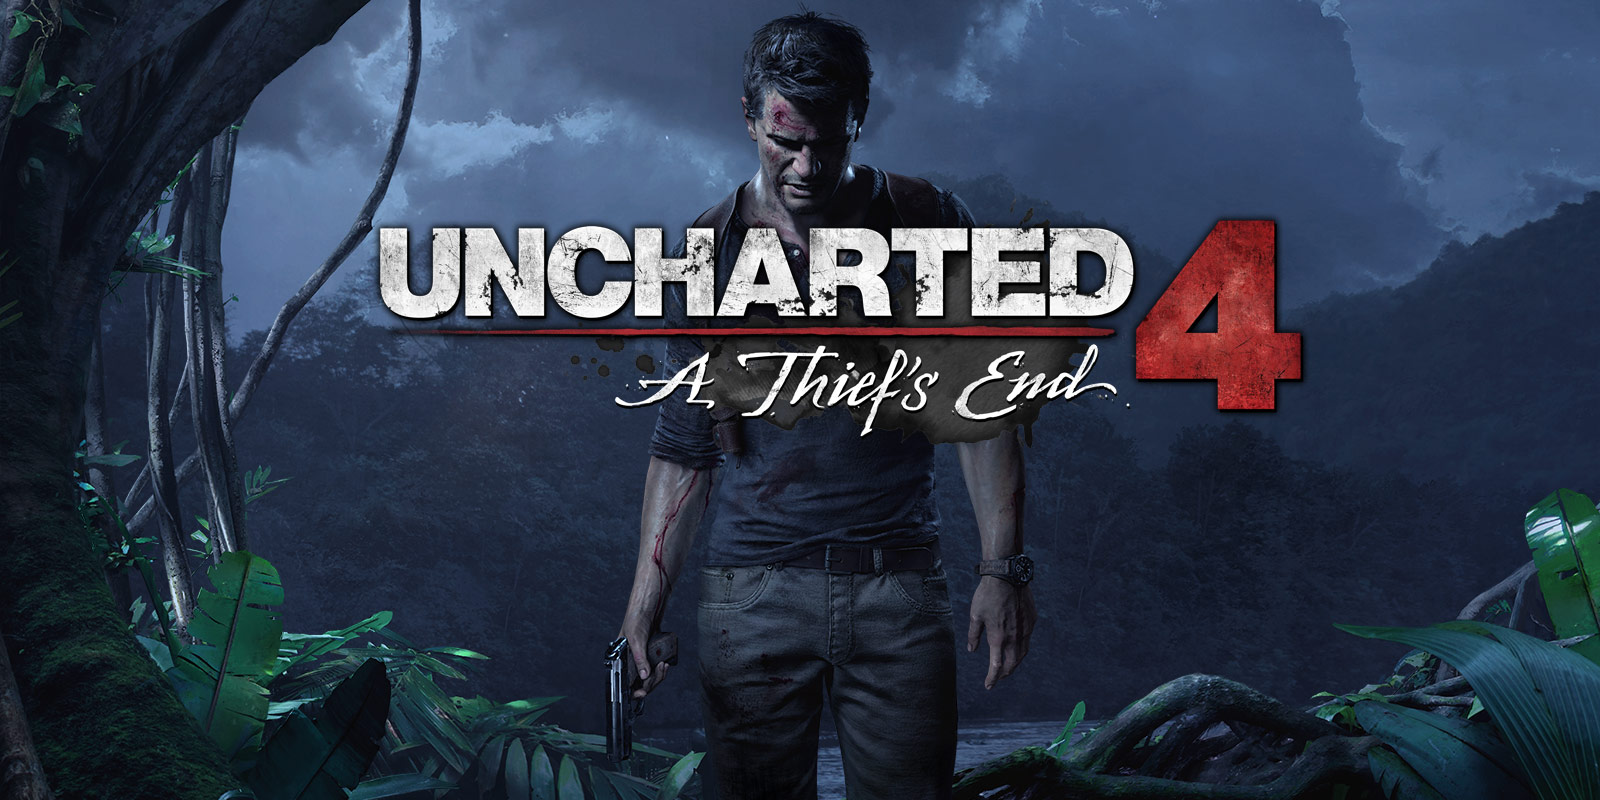 Uncharted 4: A Thief's End - PS4 Review | Chalgyr's Game Room